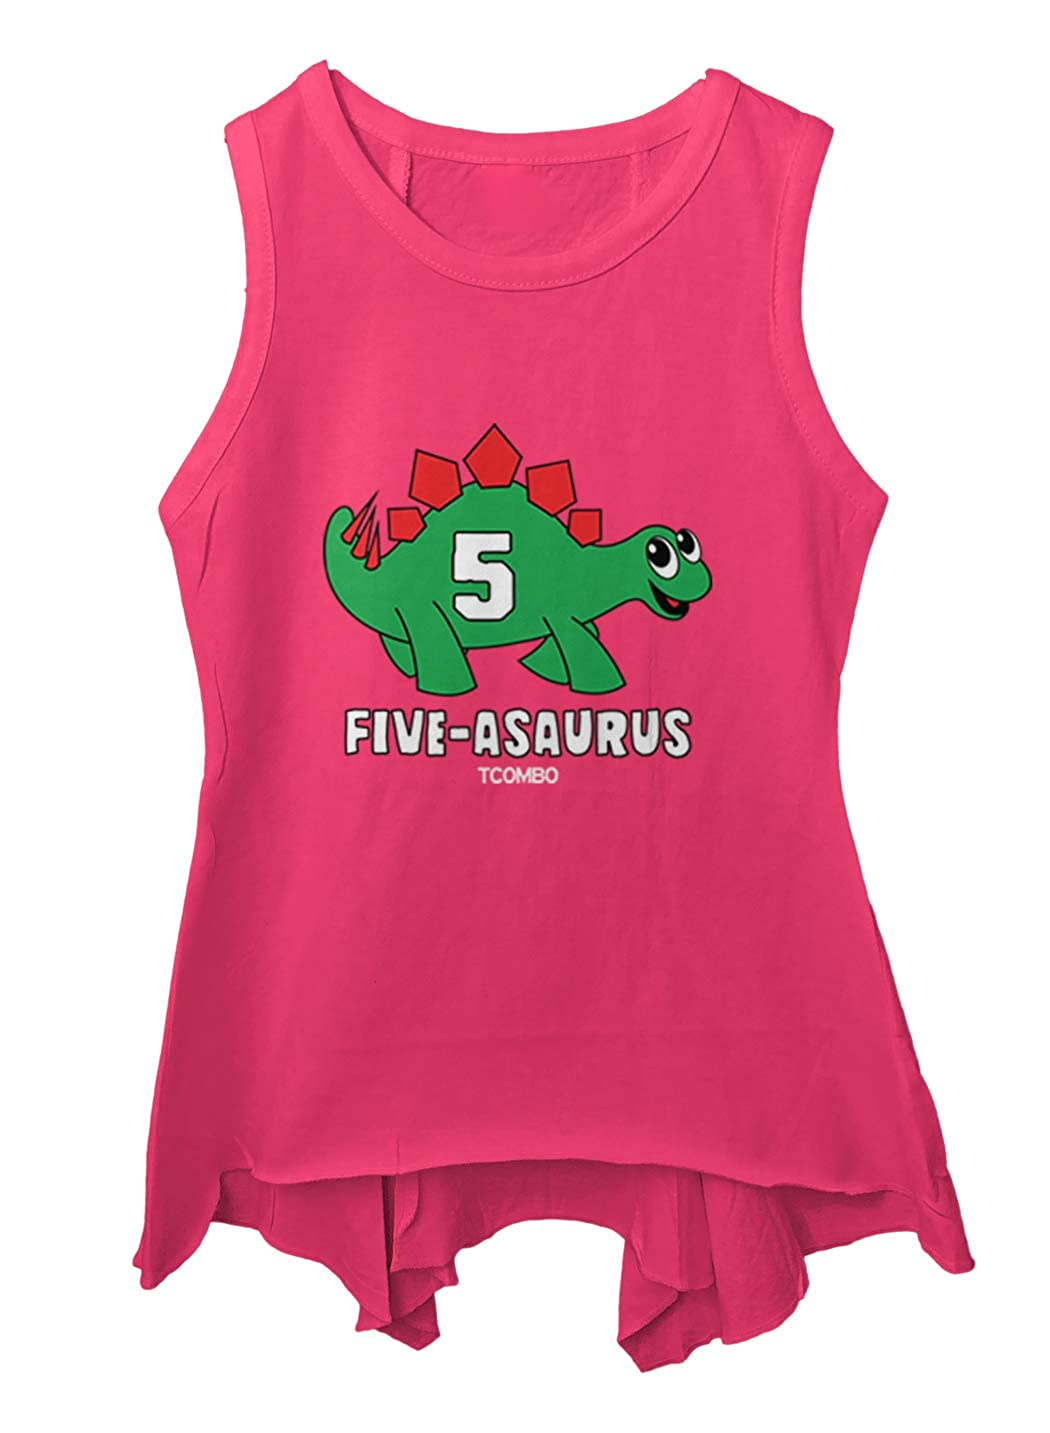 5 Year Old Dinosaur Toddler//Youth Sleeveless Backswing Tcombo Five-Asaurus